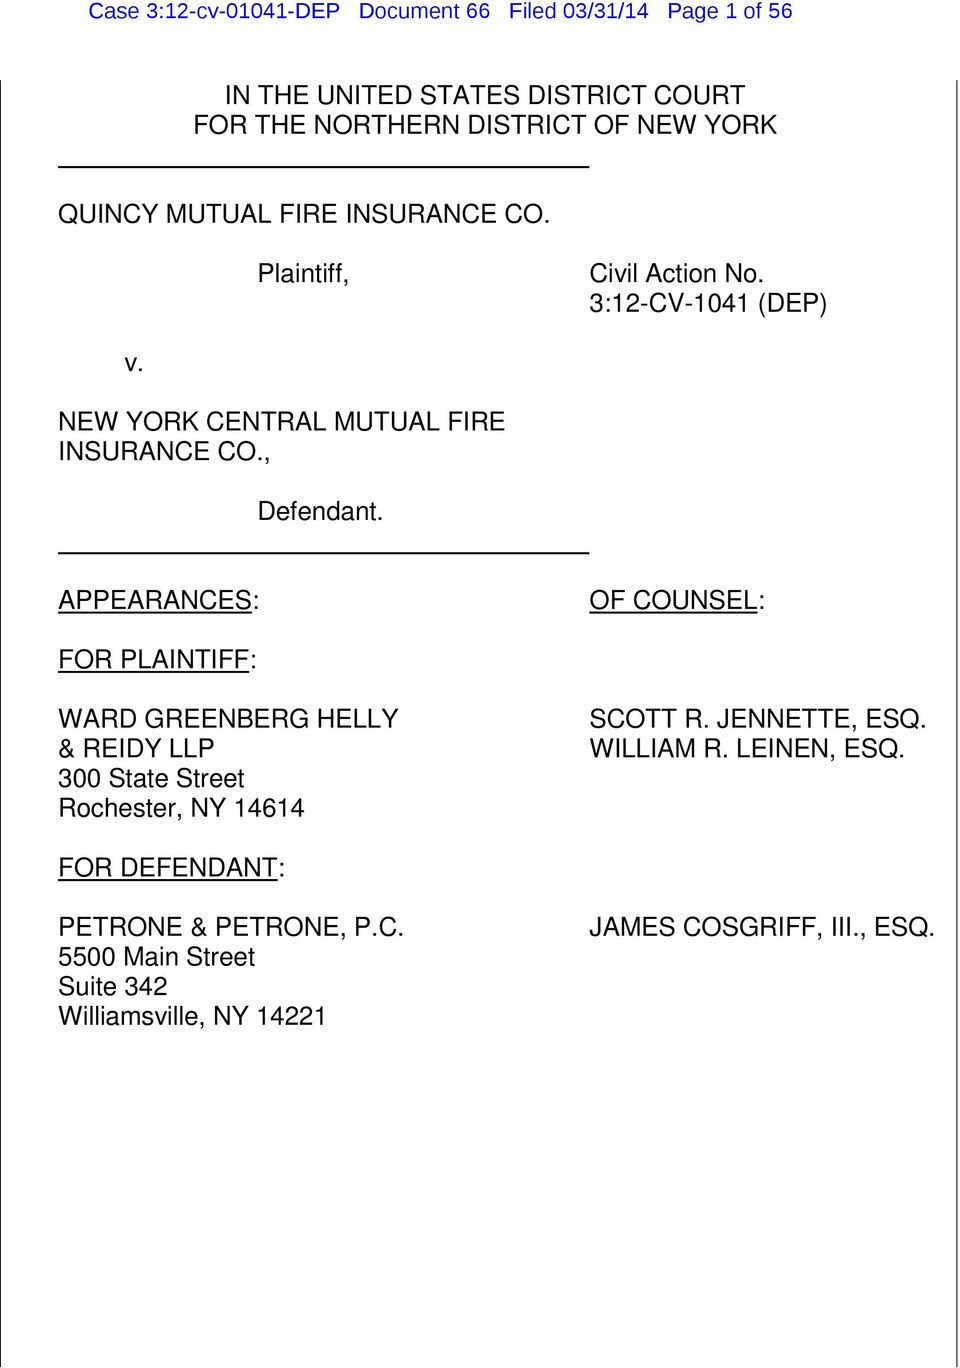 APPEARANCES: OF COUNSEL: FOR PLAINTIFF: WARD GREENBERG HELLY & REIDY LLP 300 State Street Rochester, NY 14614 SCOTT R. JENNETTE, ESQ.